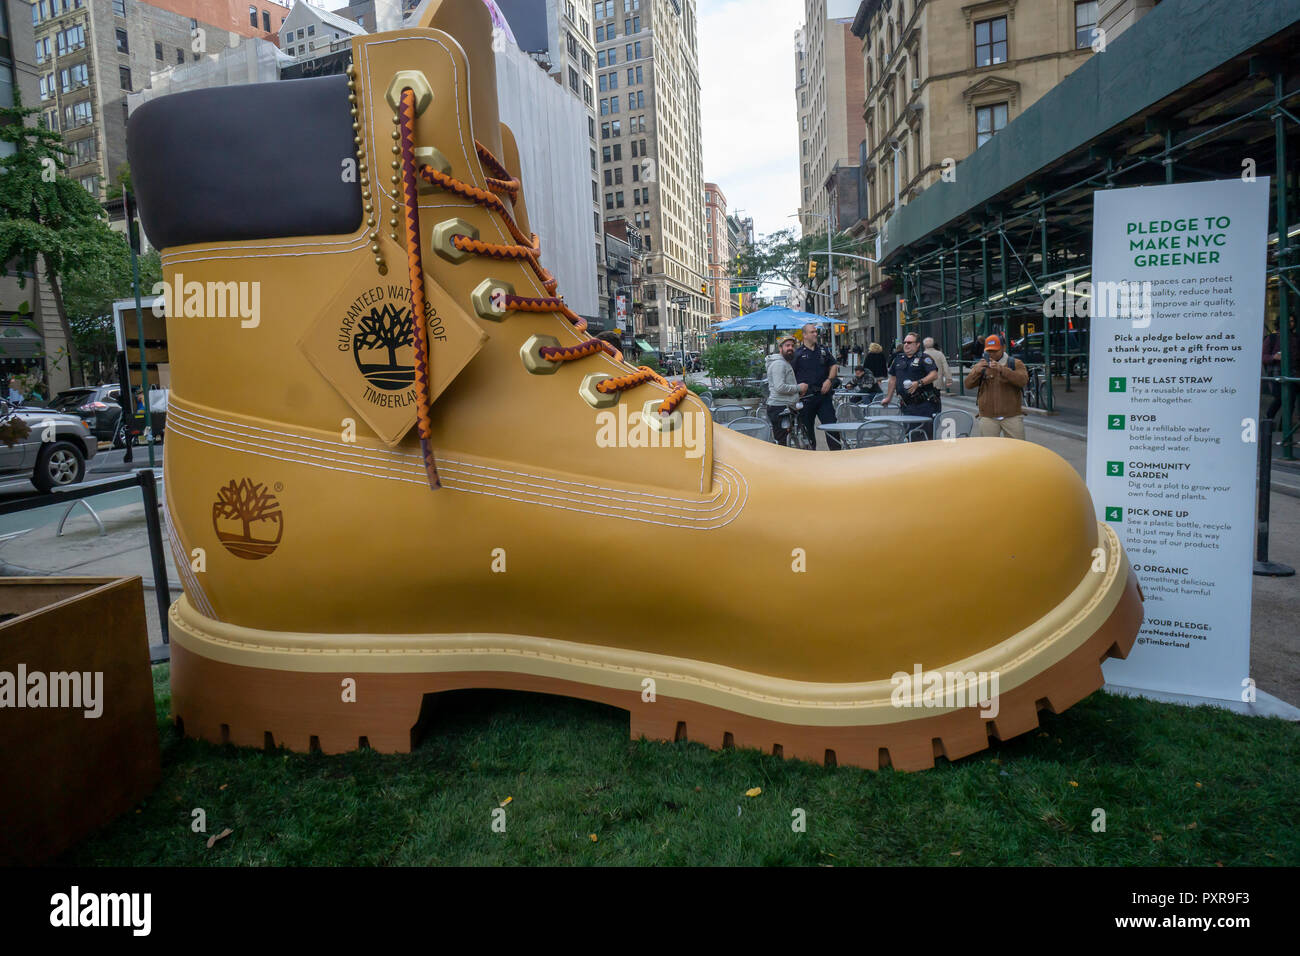 9b0f4103ca91 A giant Timberland boot attracts visitors to Flatiron Plaza in New York on  Tuesday